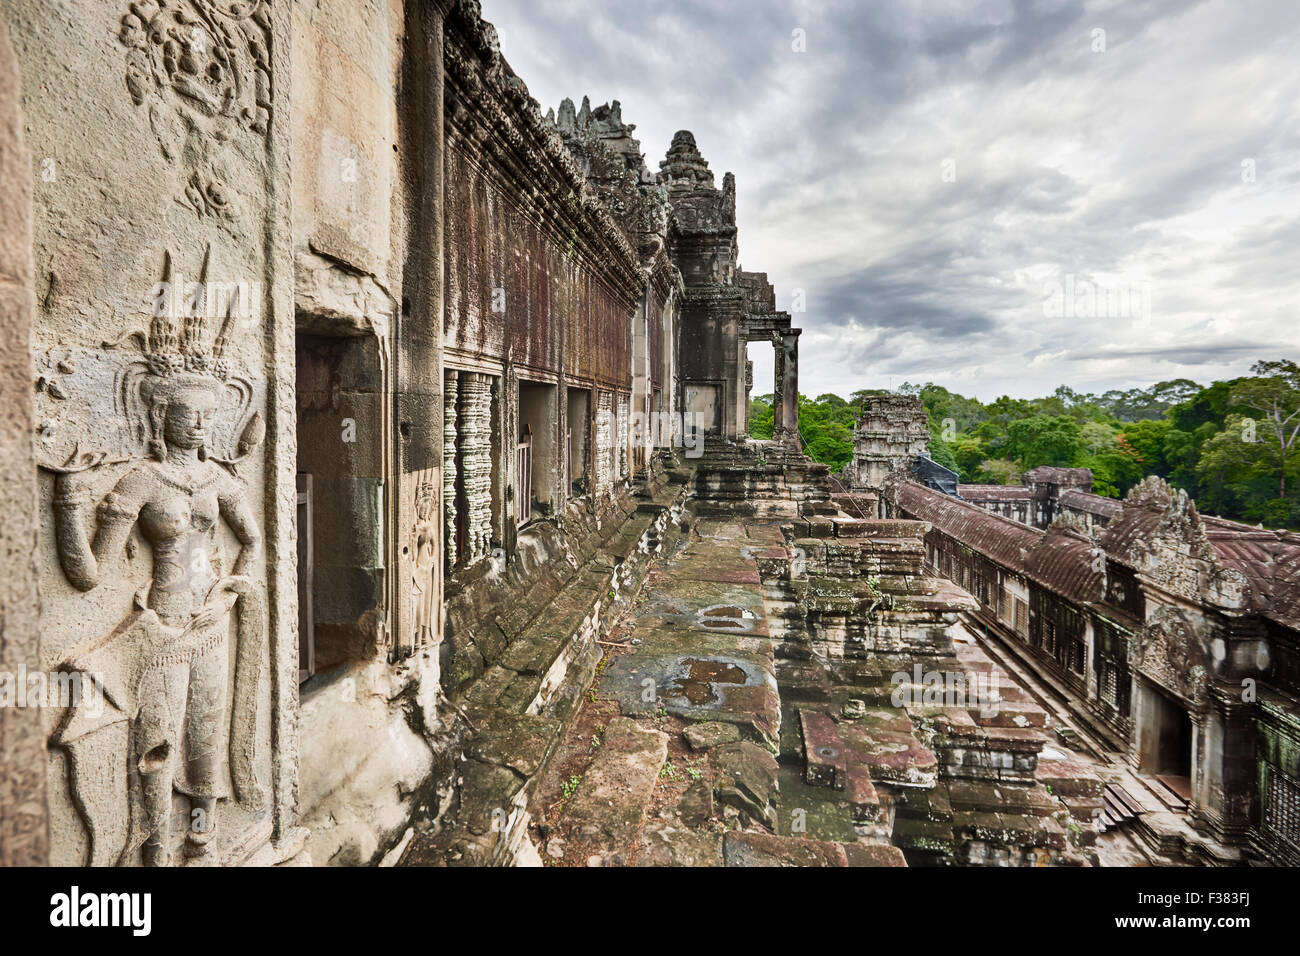 View from the top tier of Angkor Wat temple. Angkor Archaeological Park, Siem Reap Province, Cambodia. - Stock Image